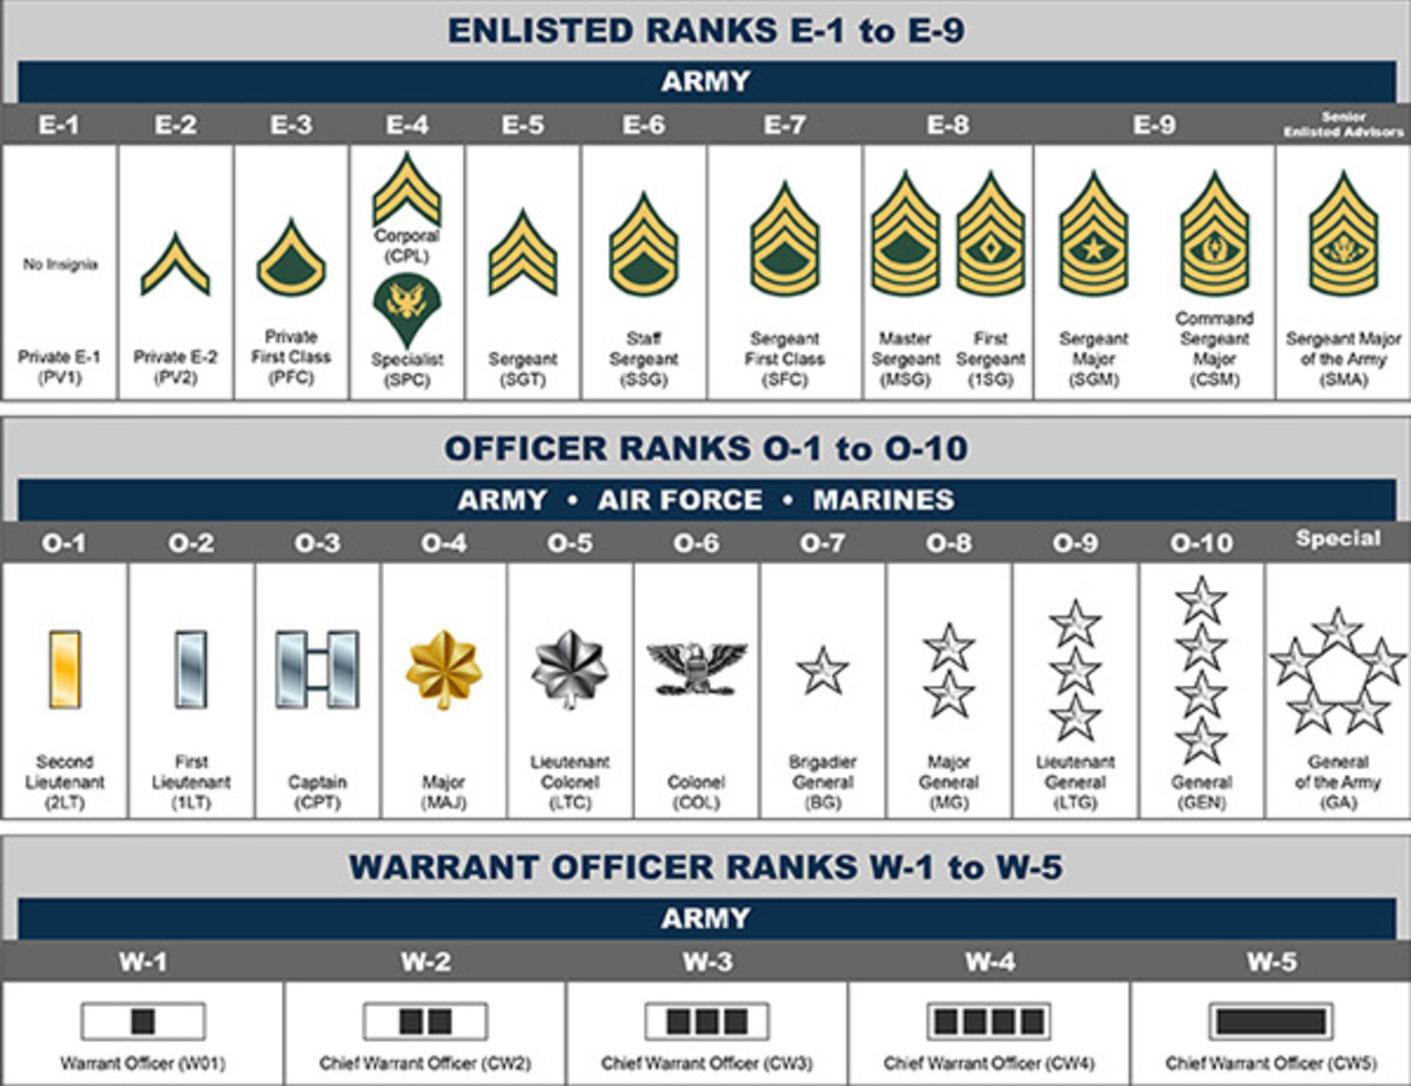 ArmyStudyGuide: Army Study Guide Questions